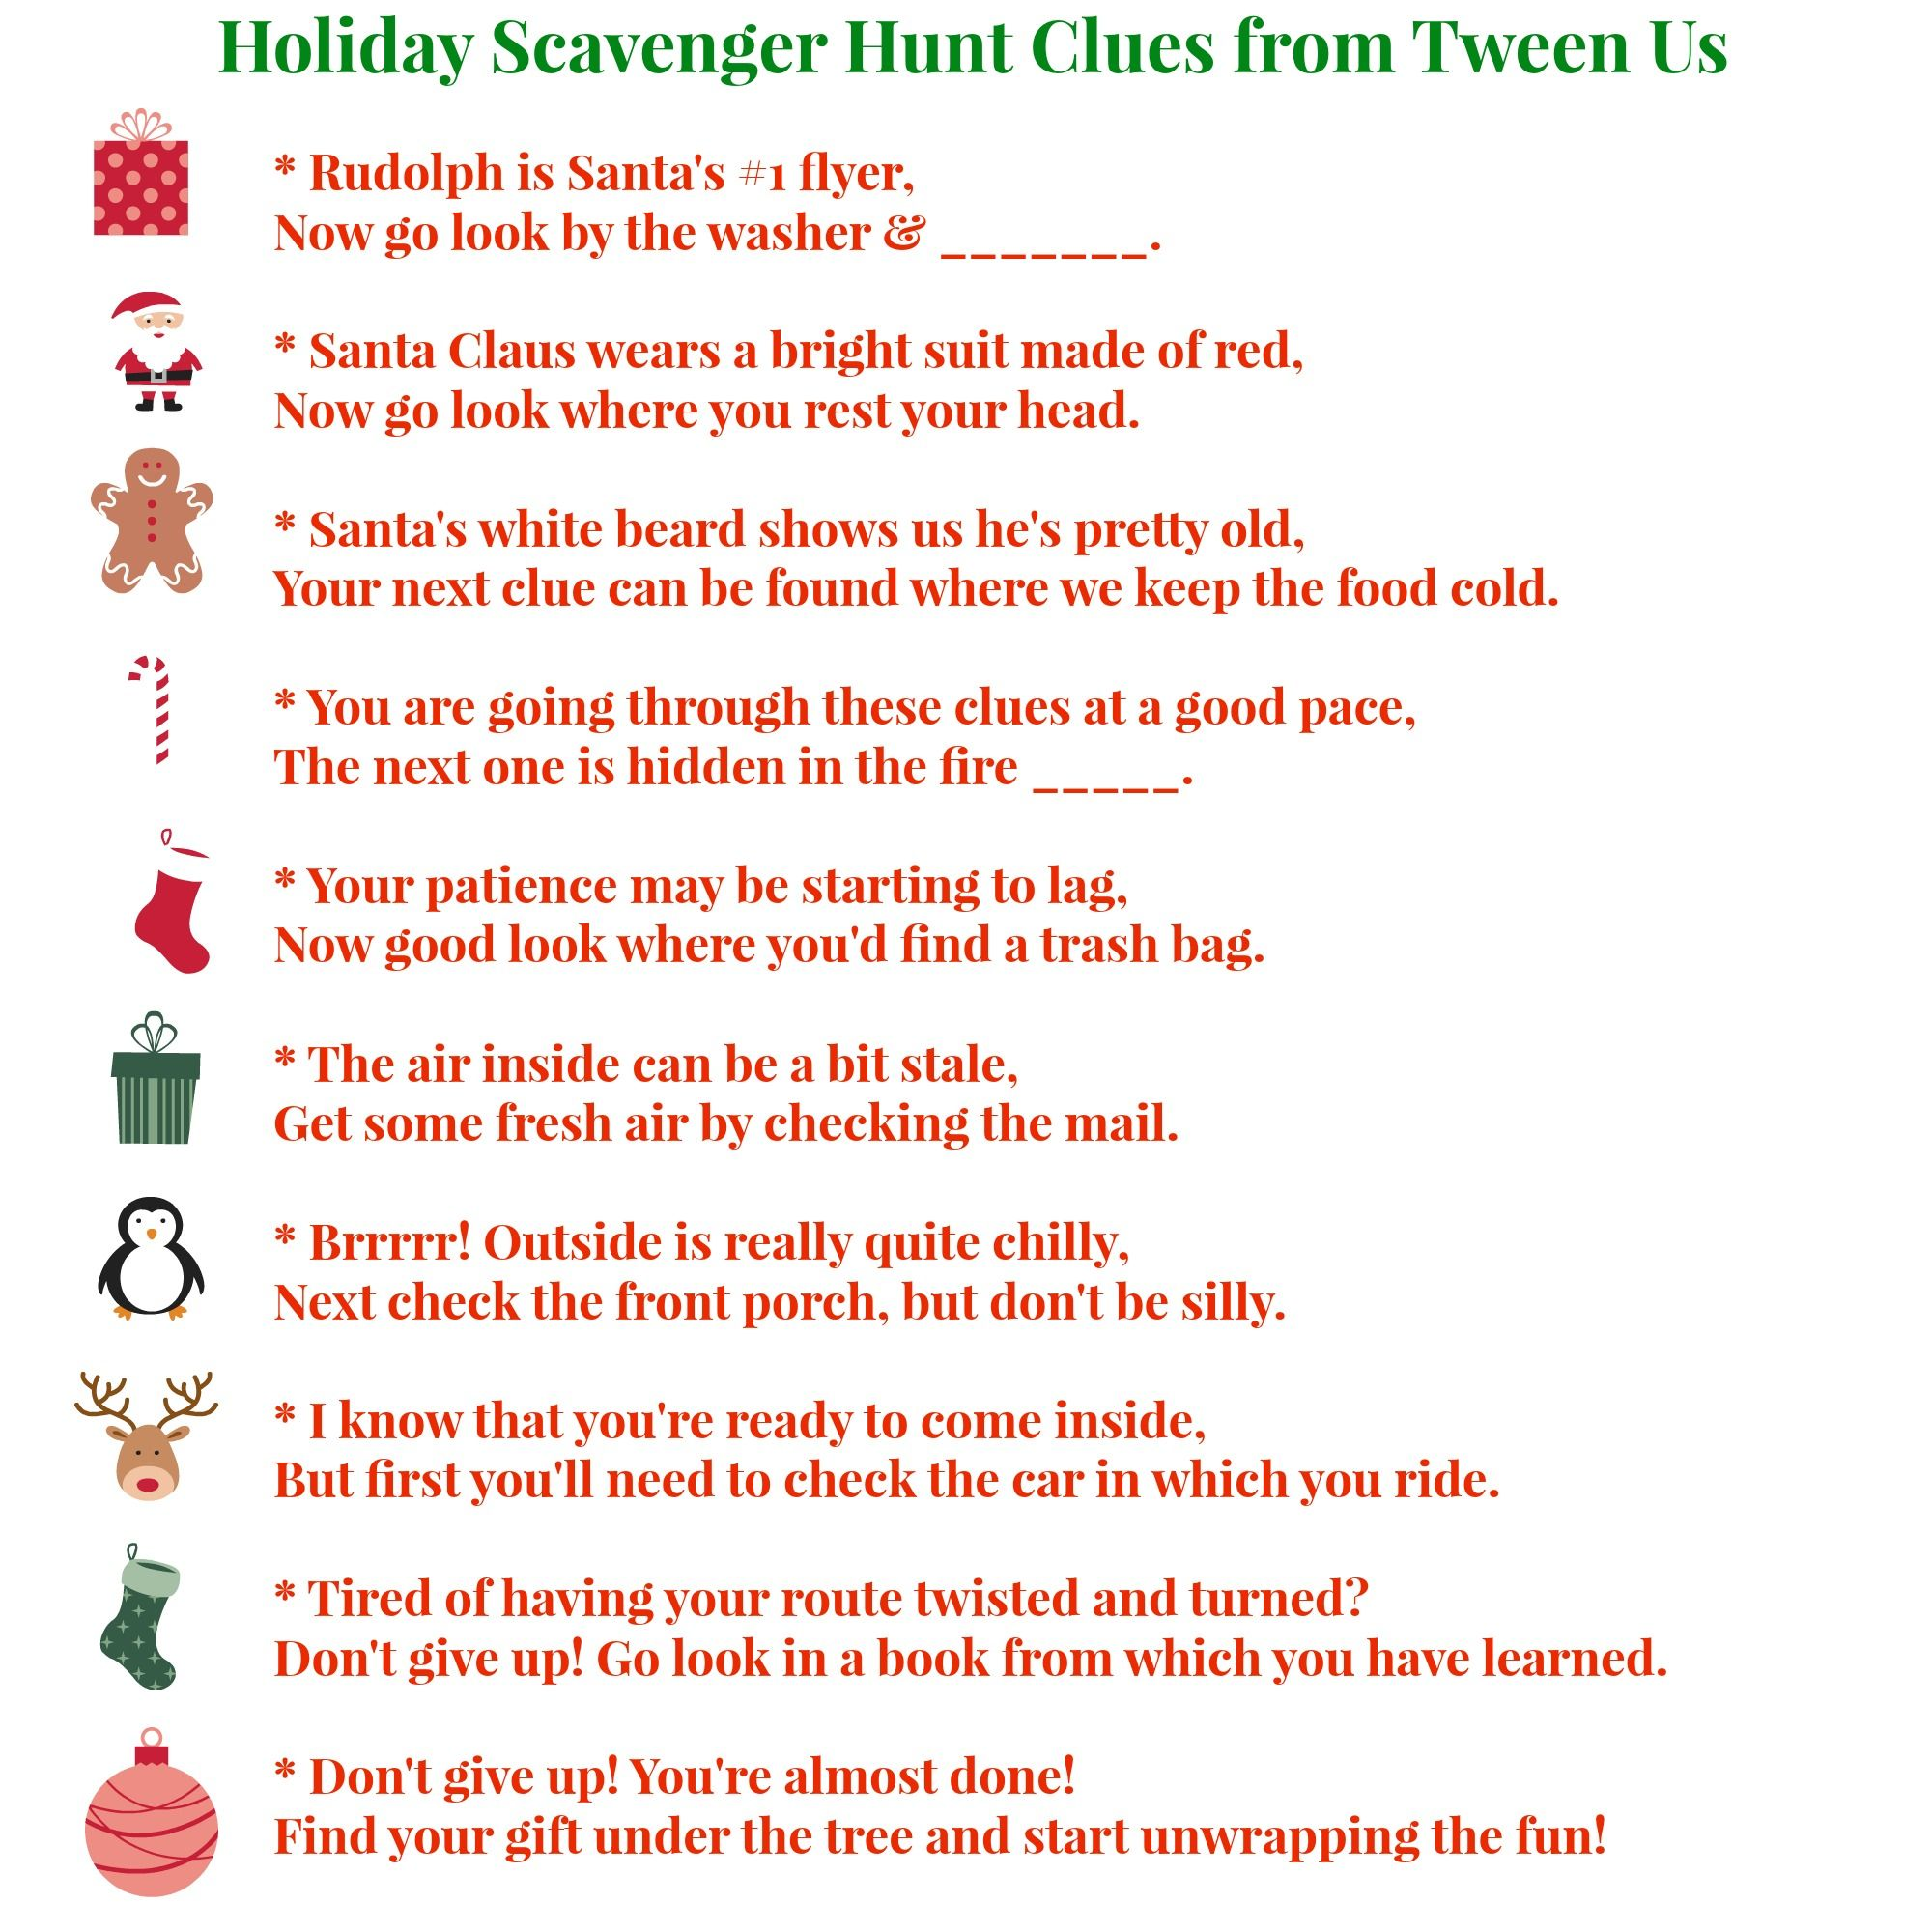 photograph regarding Christmas Scavenger Hunt Printable Clues called Printable trip scavenger hunt clues generate Offer acquiring